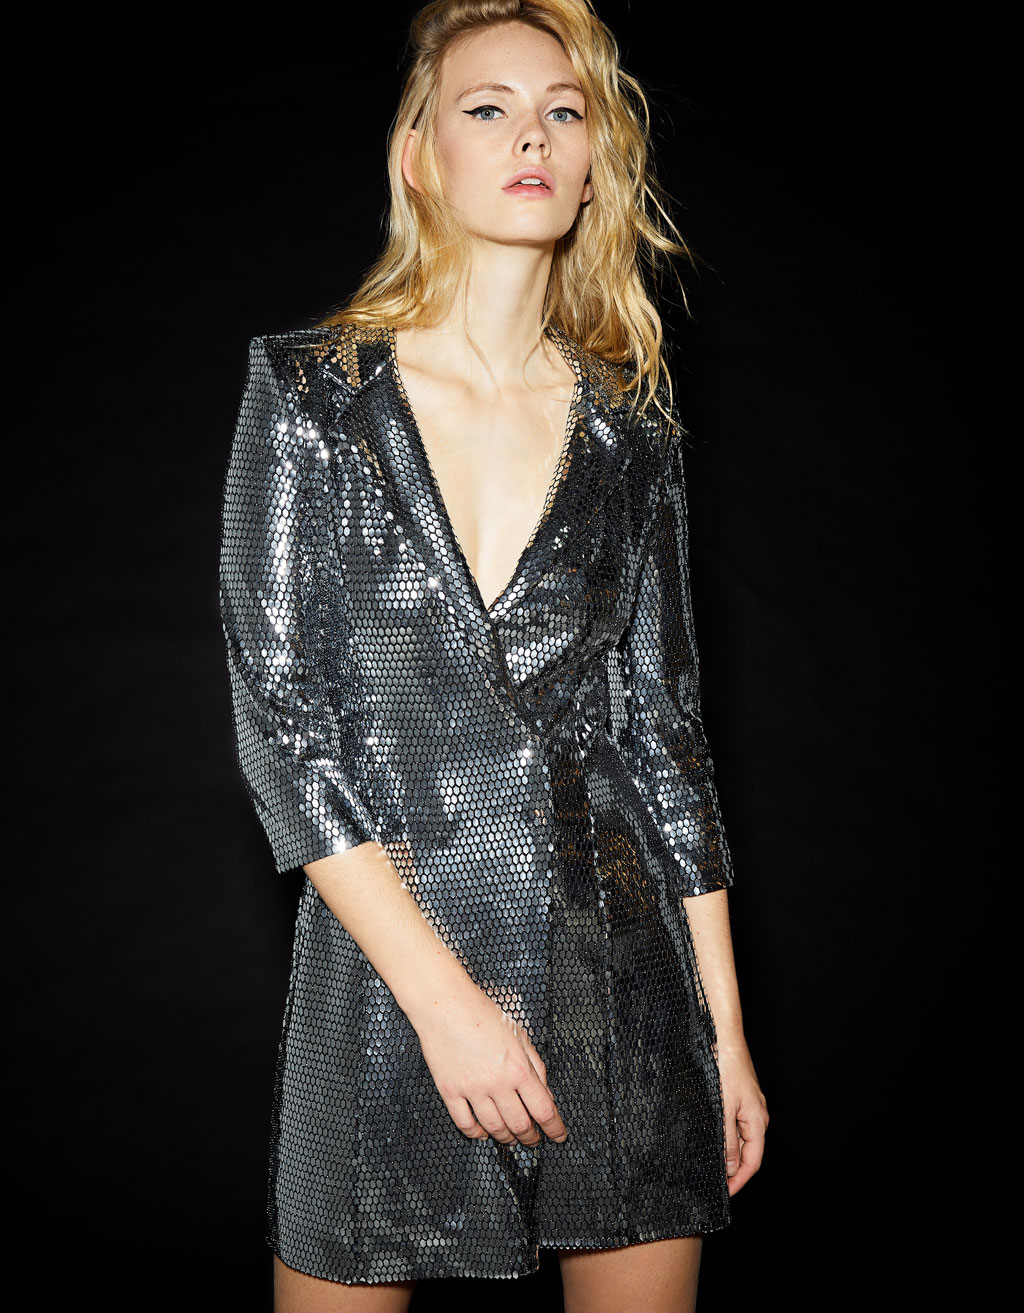 Metallic-effect blazer-style dress